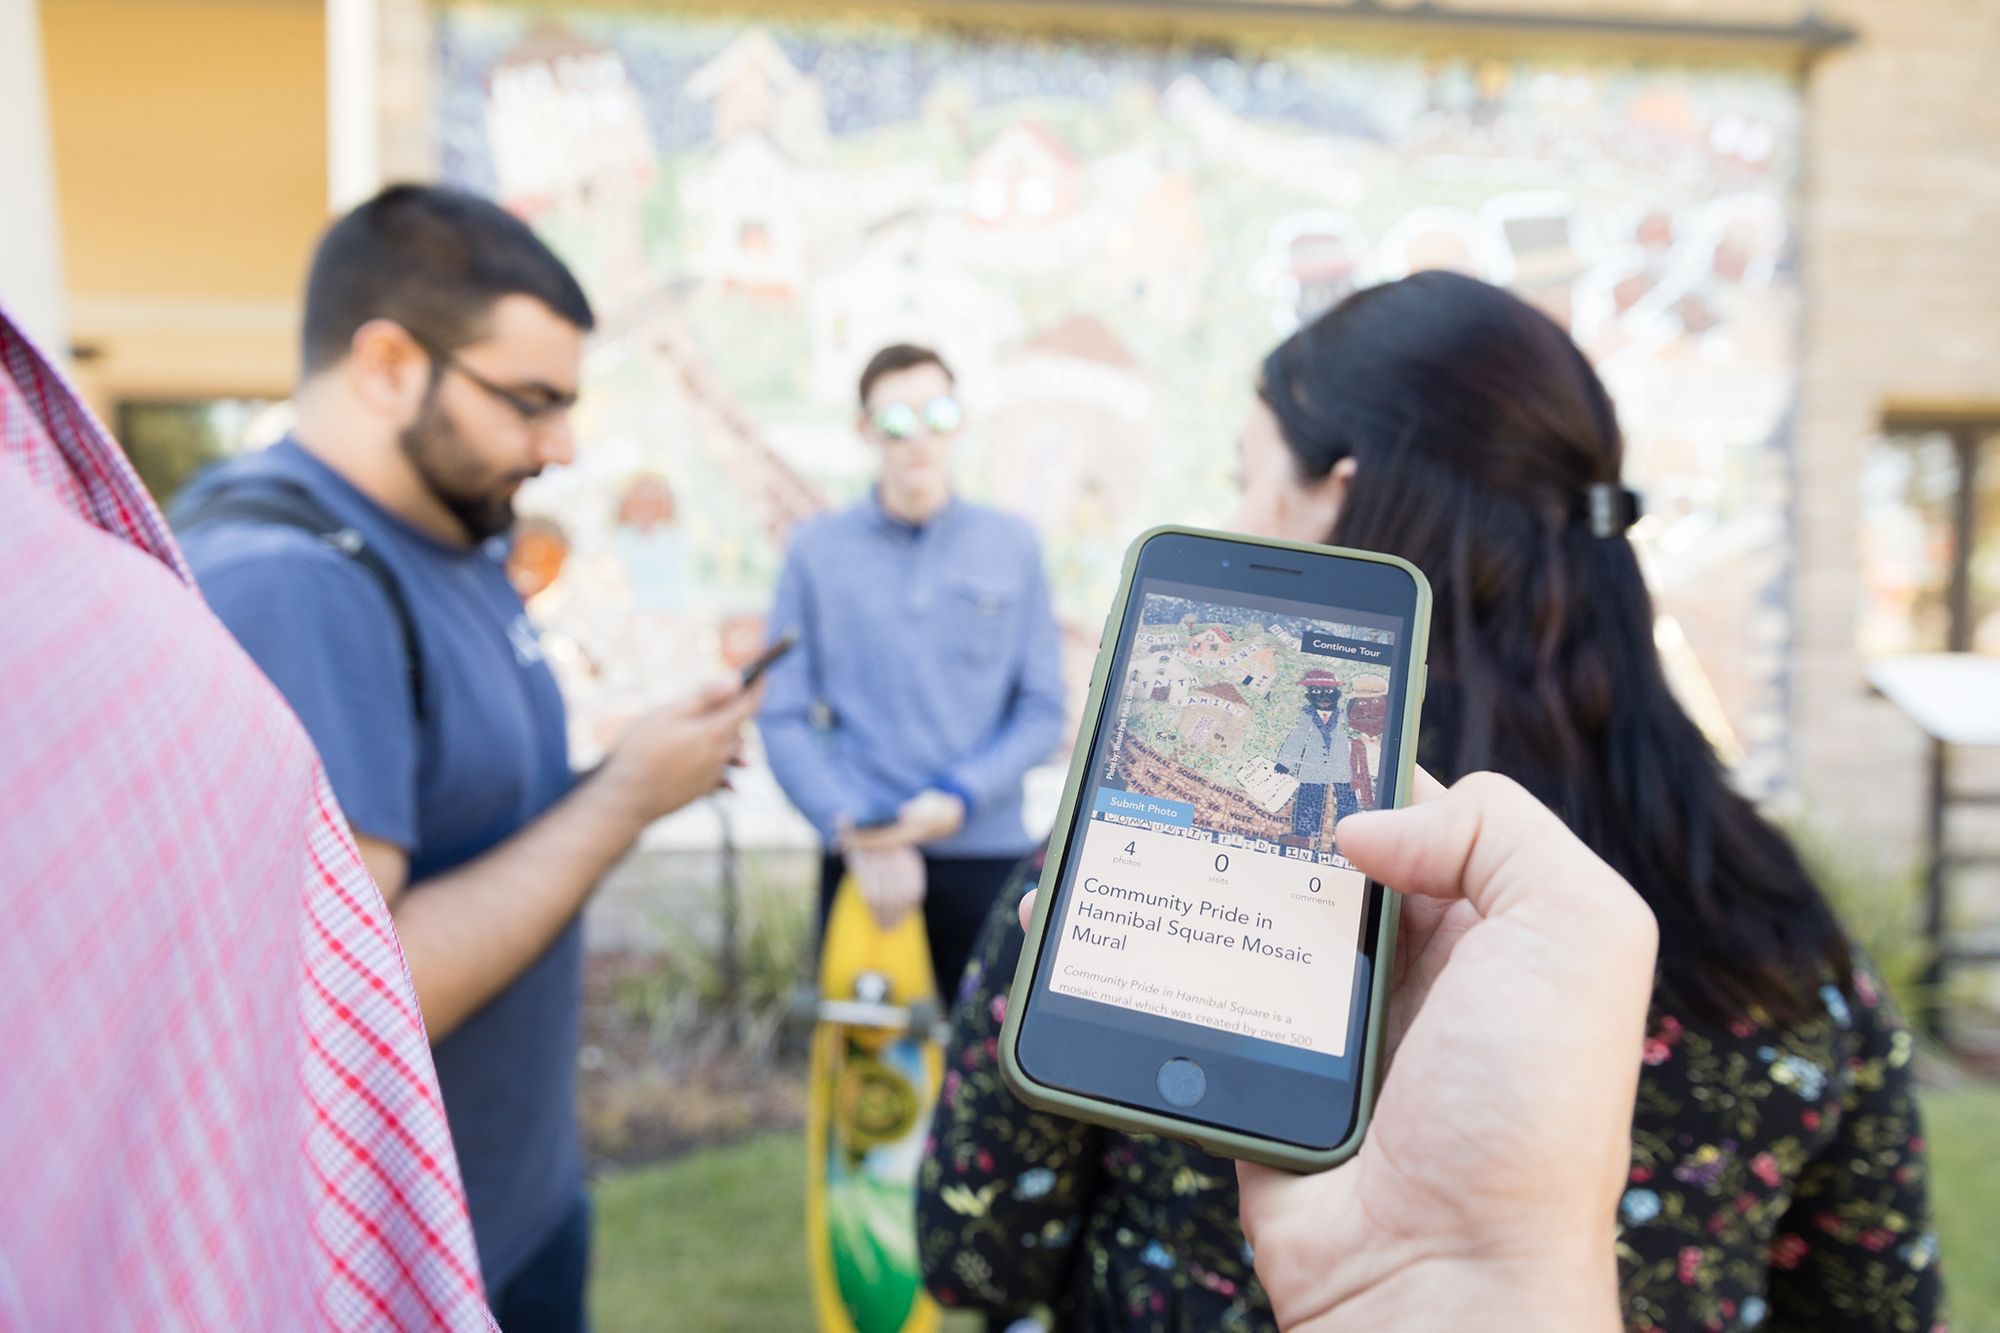 Group of students standing in front of a wall mural. Smartphone with photo of the mural.